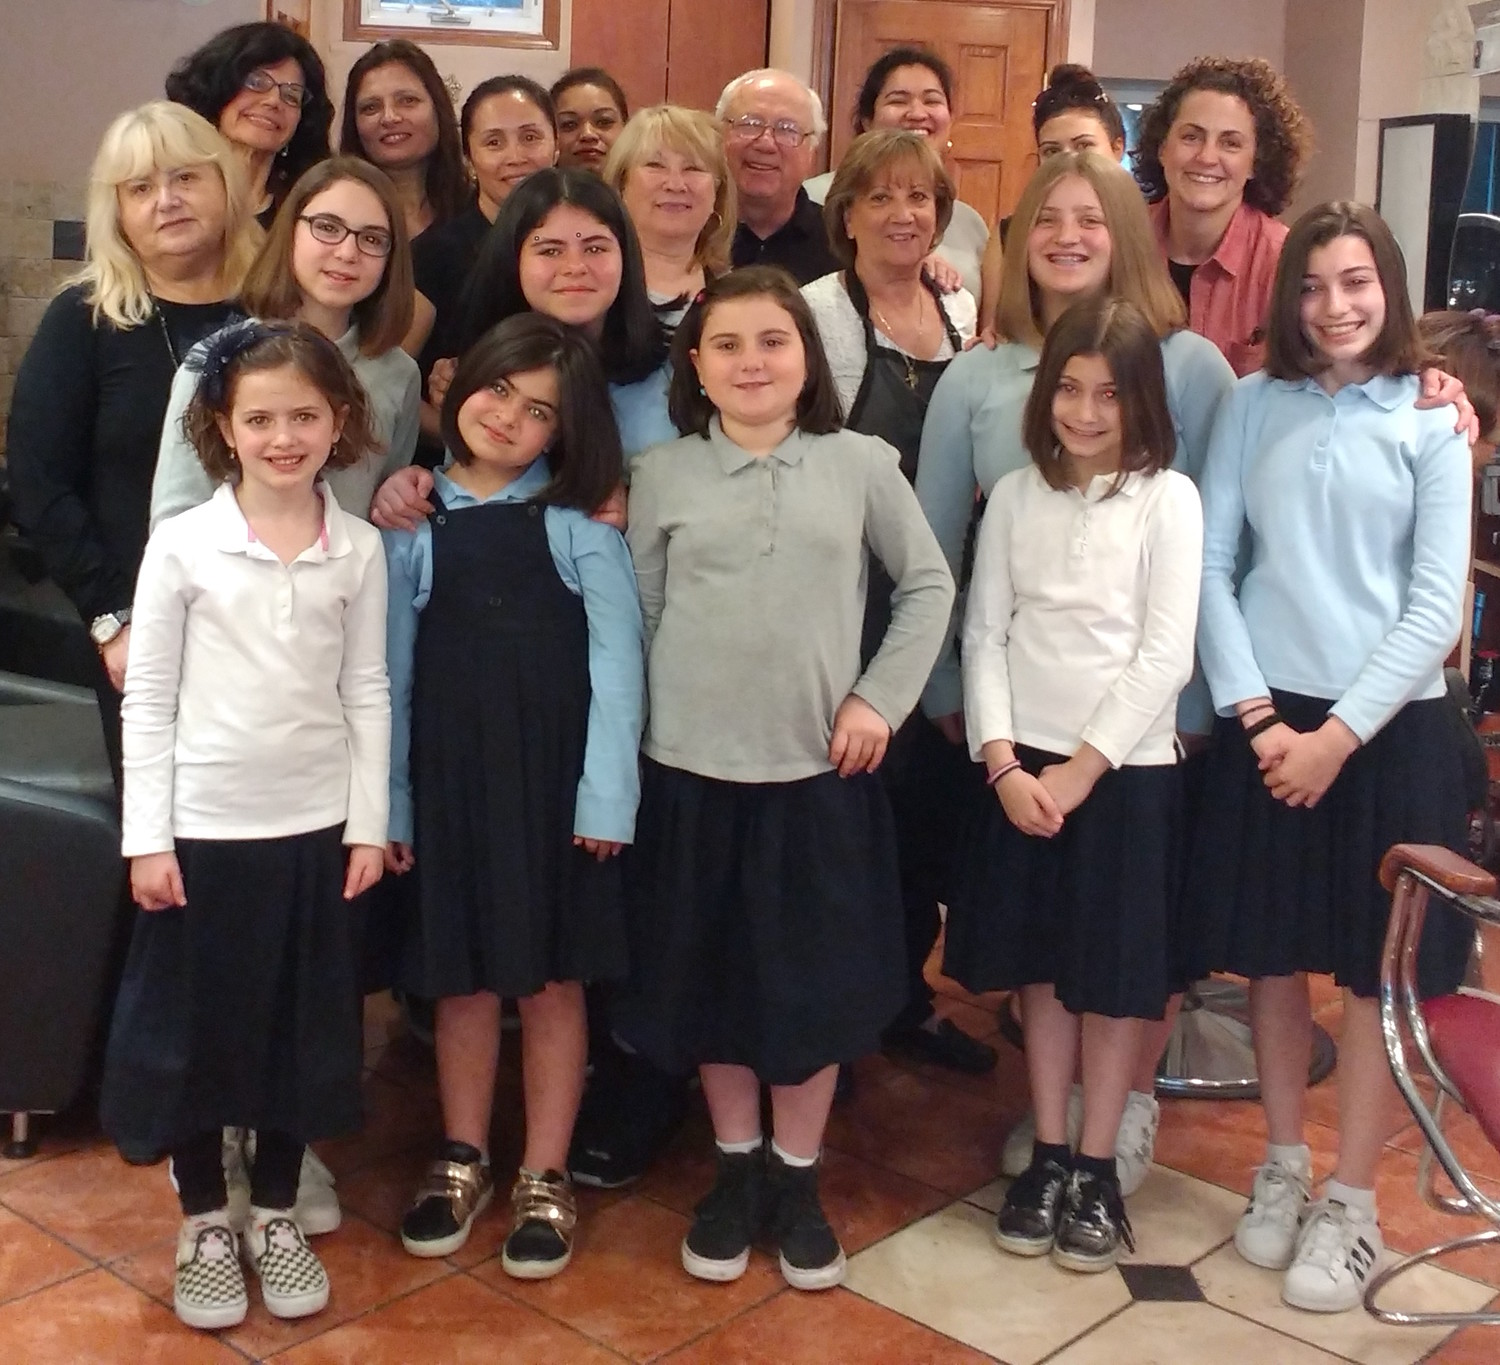 The Shulamith girls after the cut: The eight girls are: second graders Kira Gurevich and Shani Edery, third grader Shira Levine, fifth grader Ahuva Moskowitz, and seventh graders Rachel Levine, Michal Moskowitz, Noy Edery and Talia Bennett.